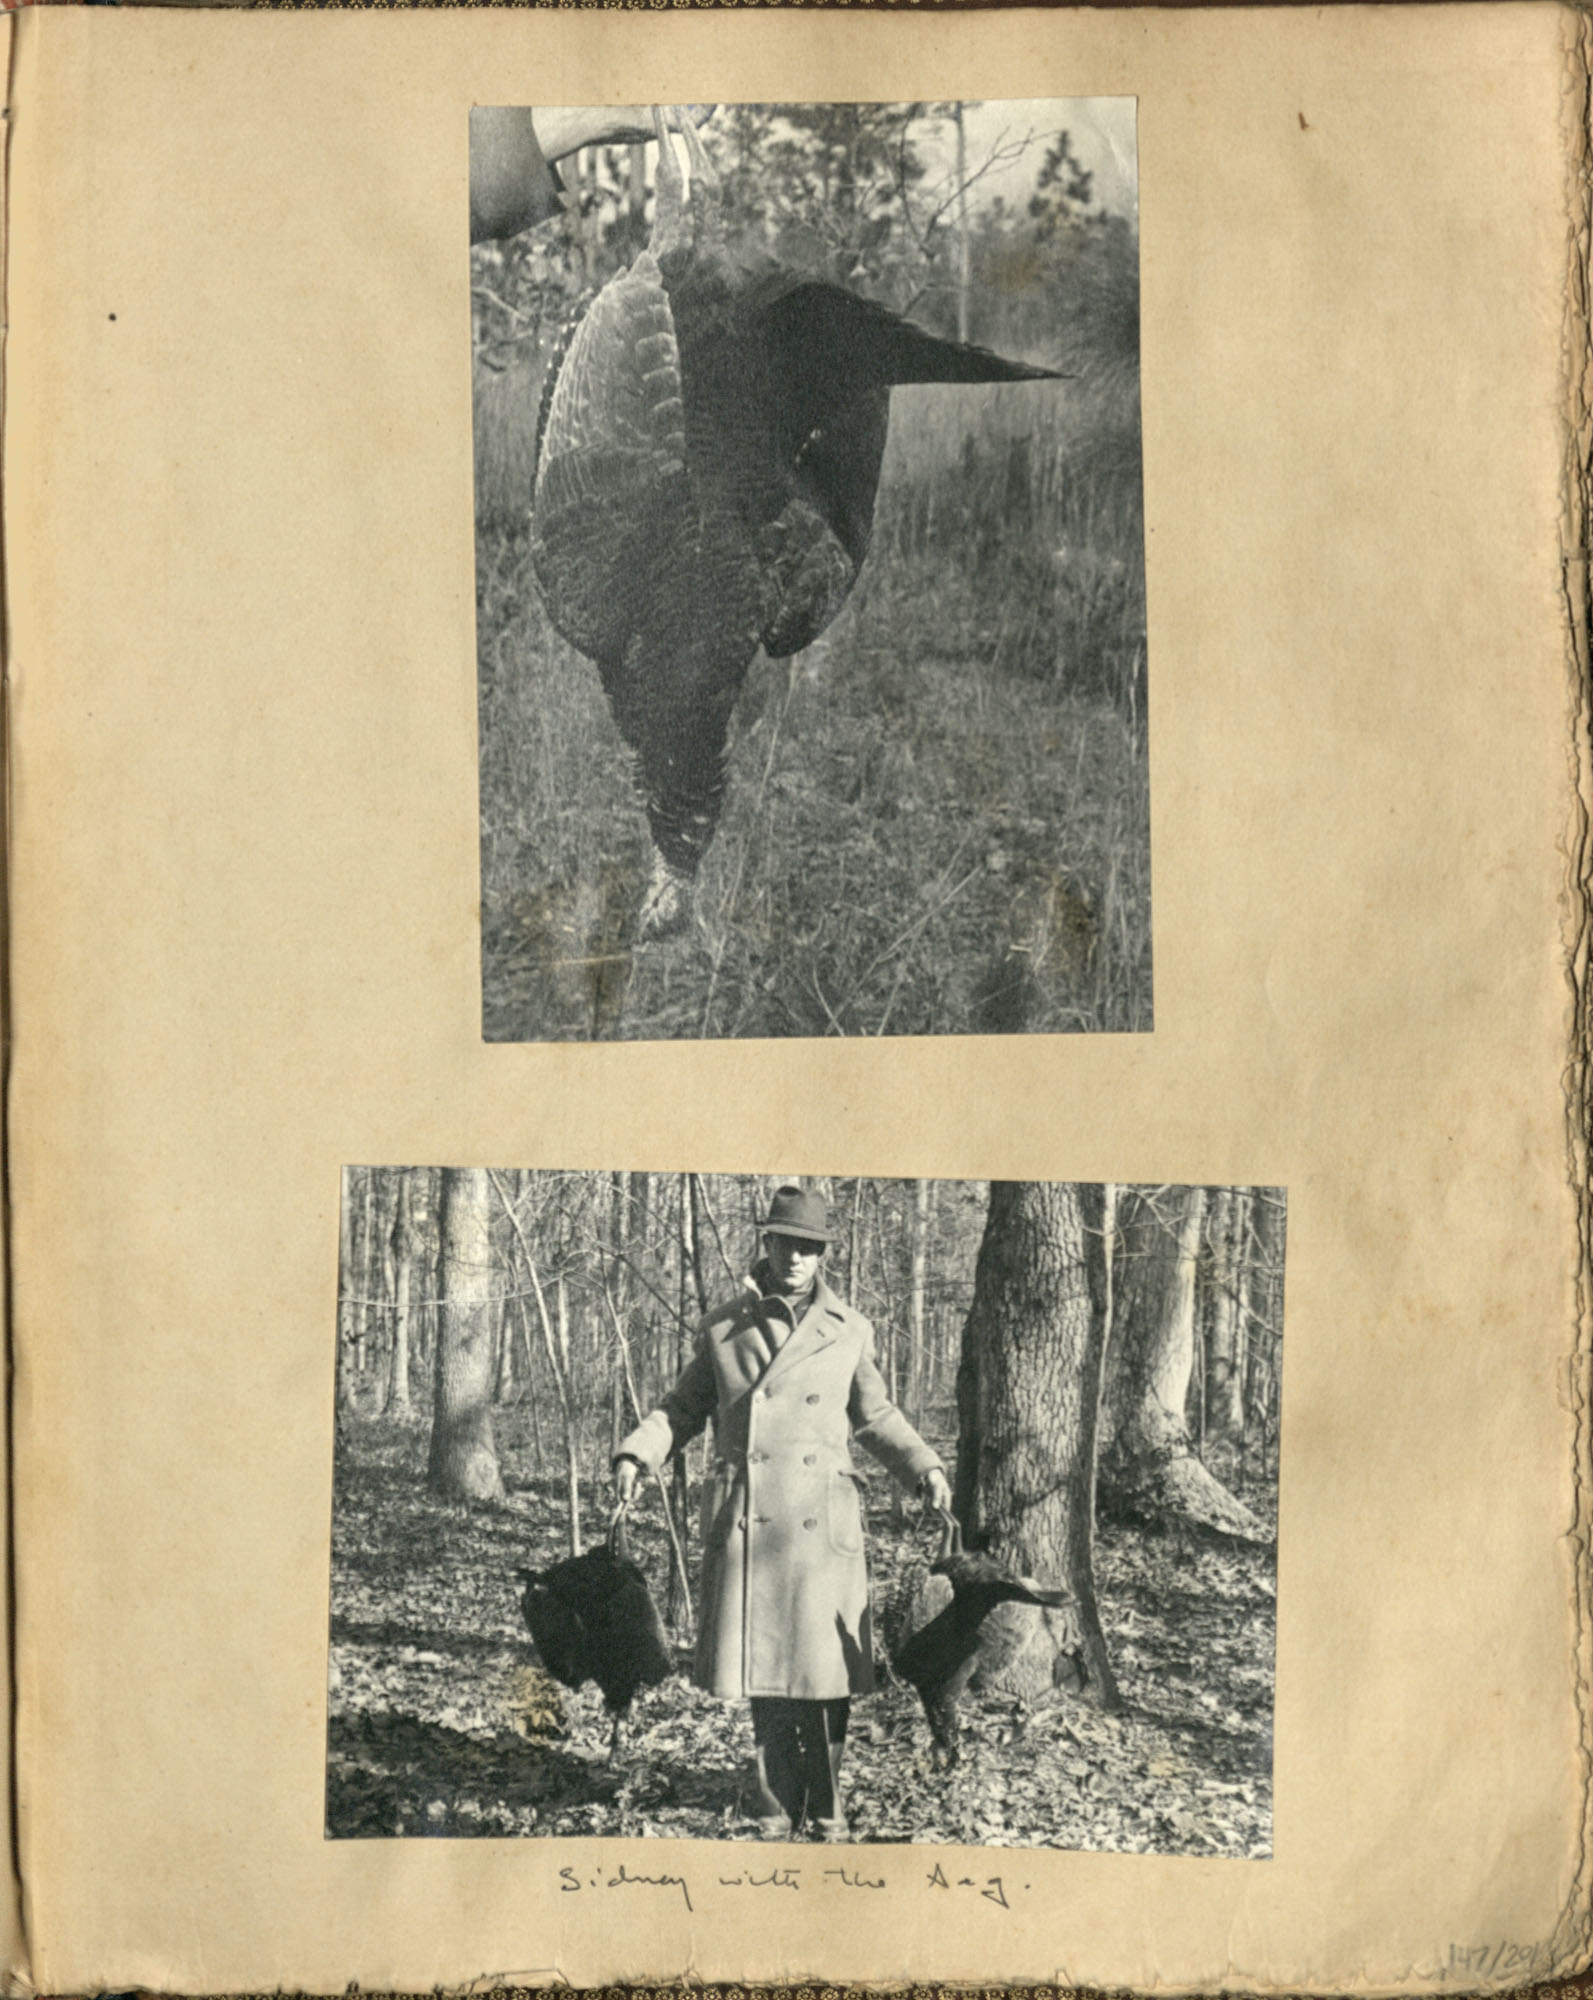 Early Medway and travels album, 1929-1937, page 147